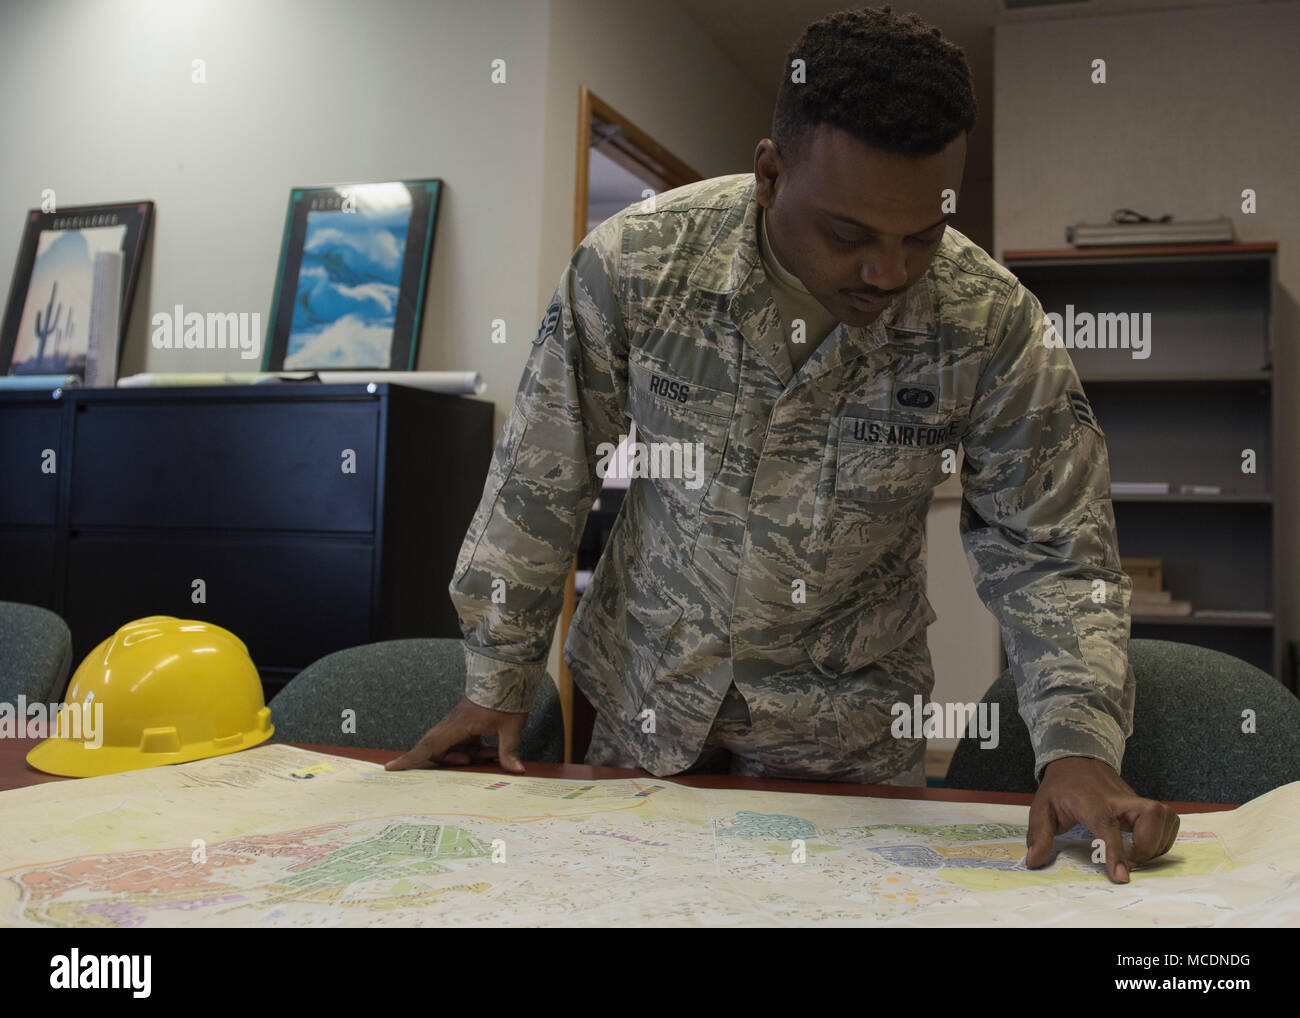 Us Air Force Bases In Japan Map.U S Air Force Senior Airman Kield Ross 18th Contracting Squadron